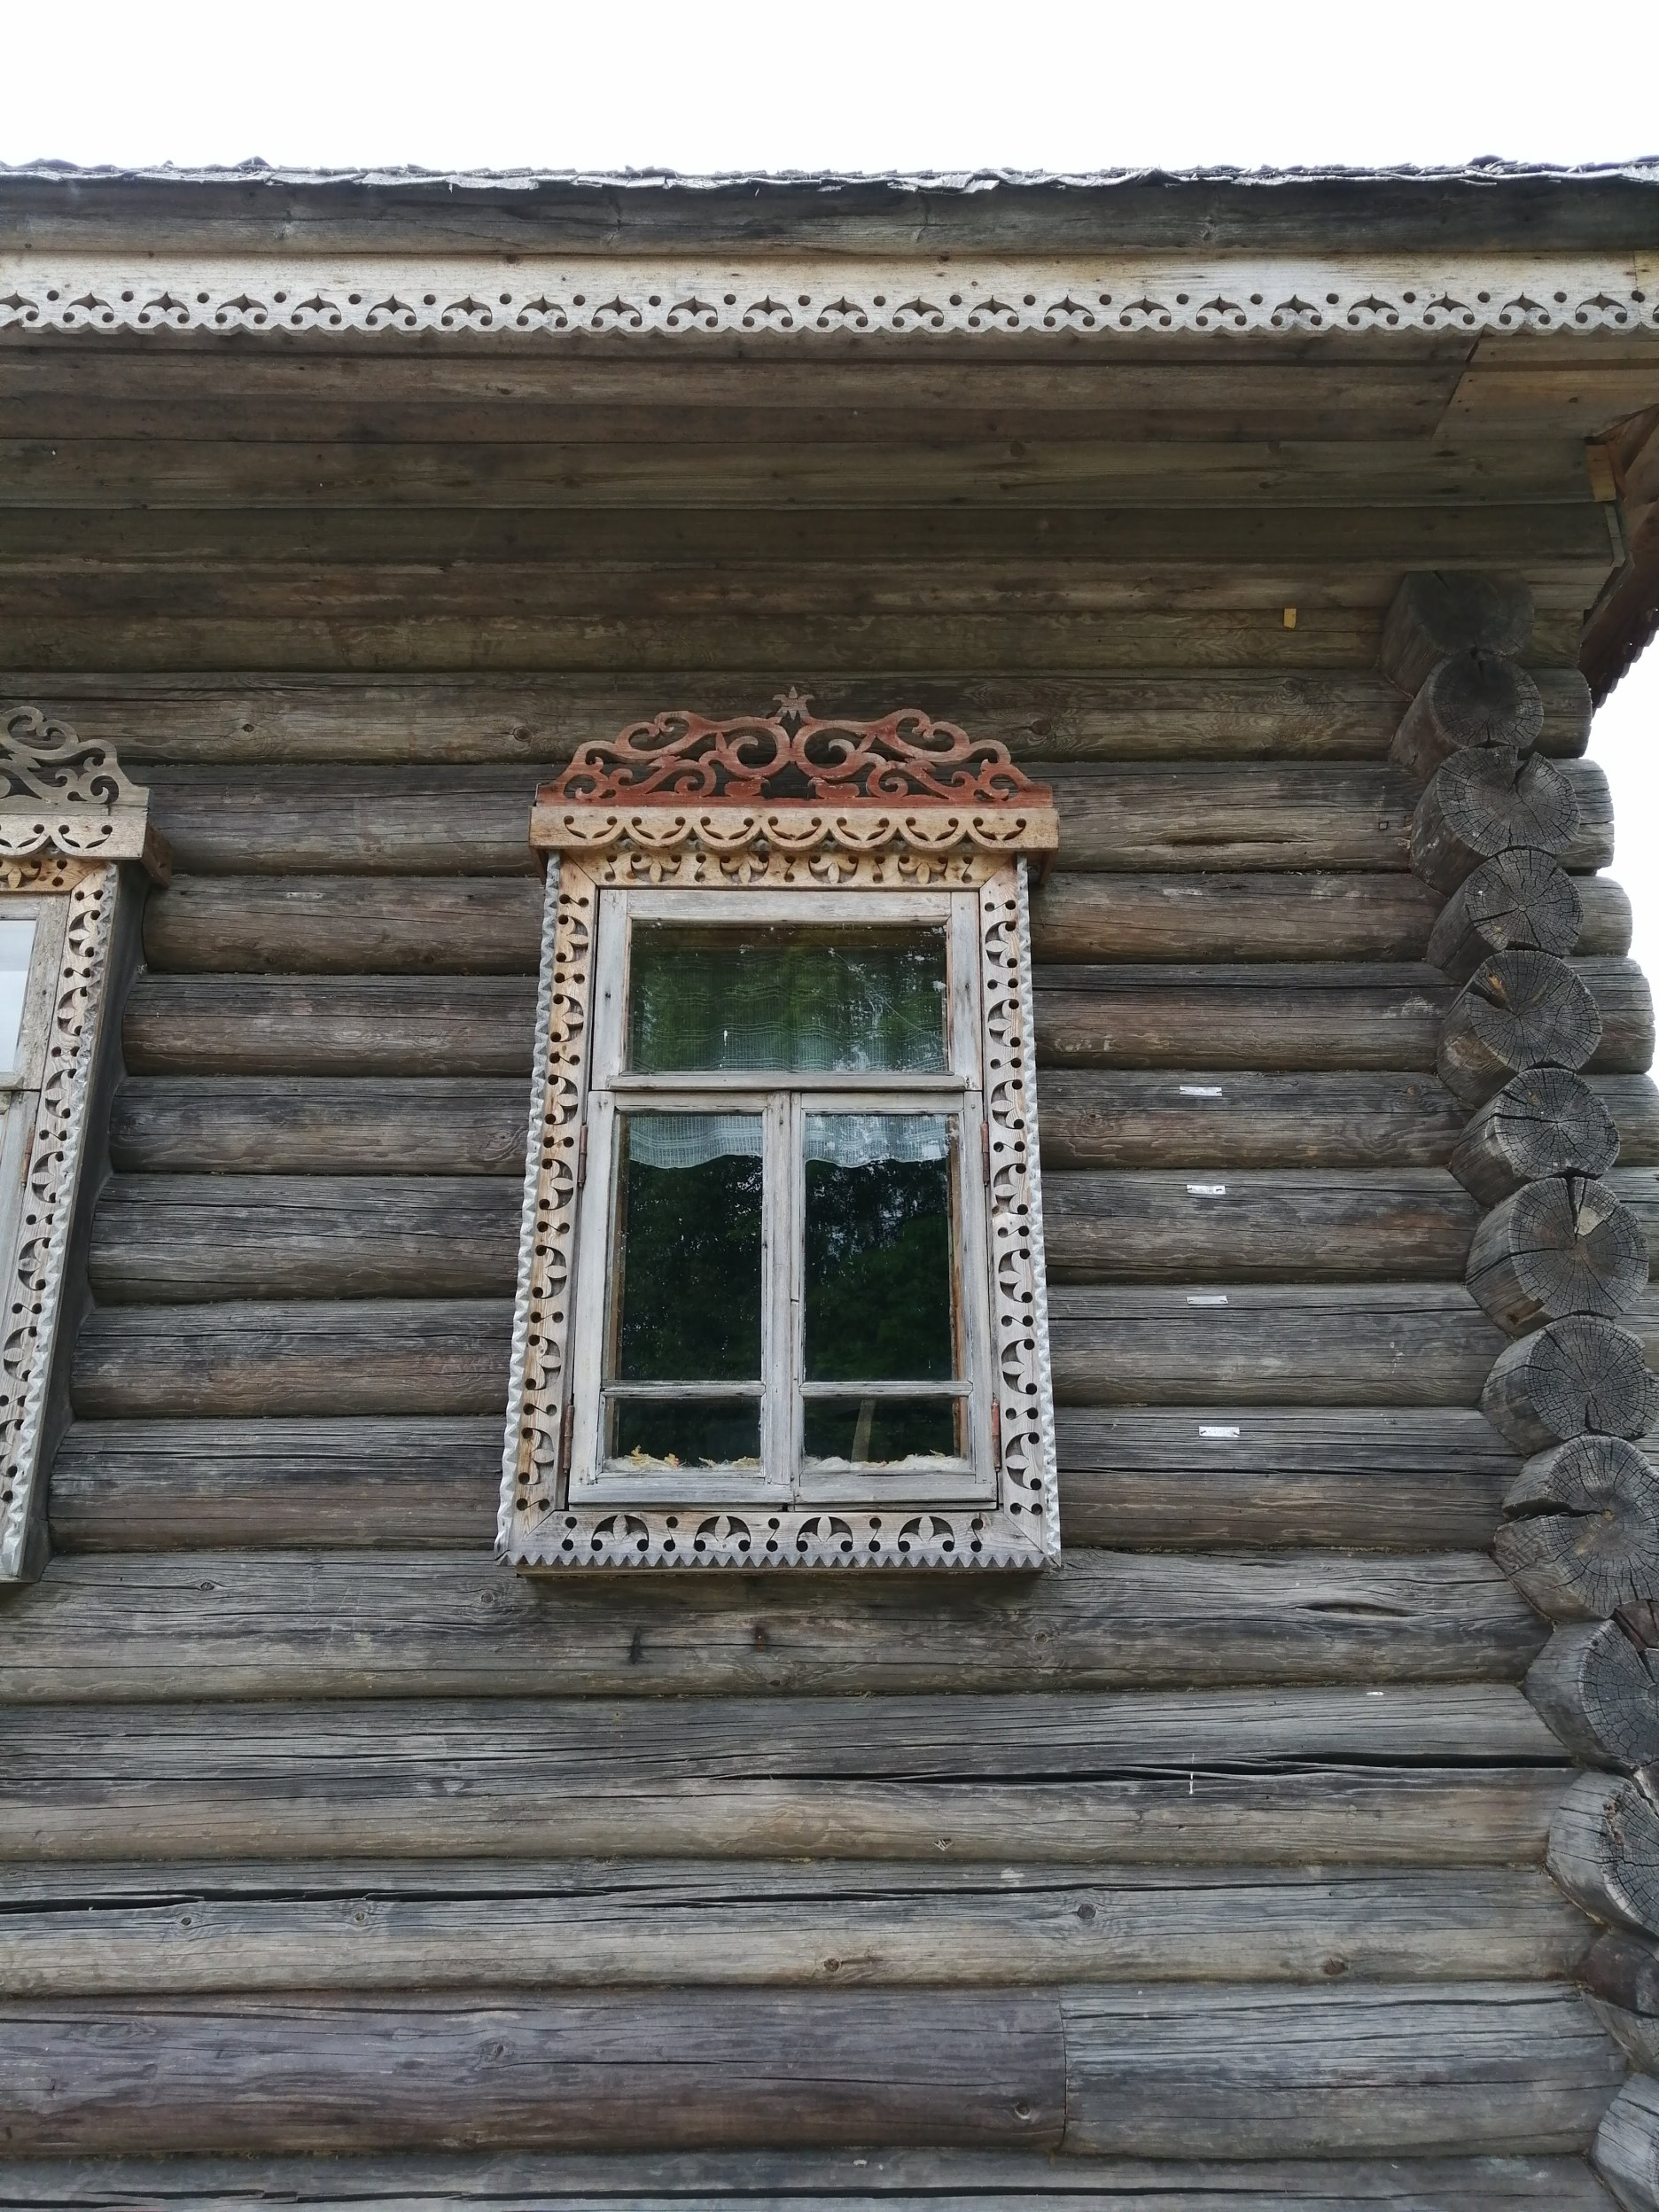 Wooden Lace - Novgorod Russia's early history